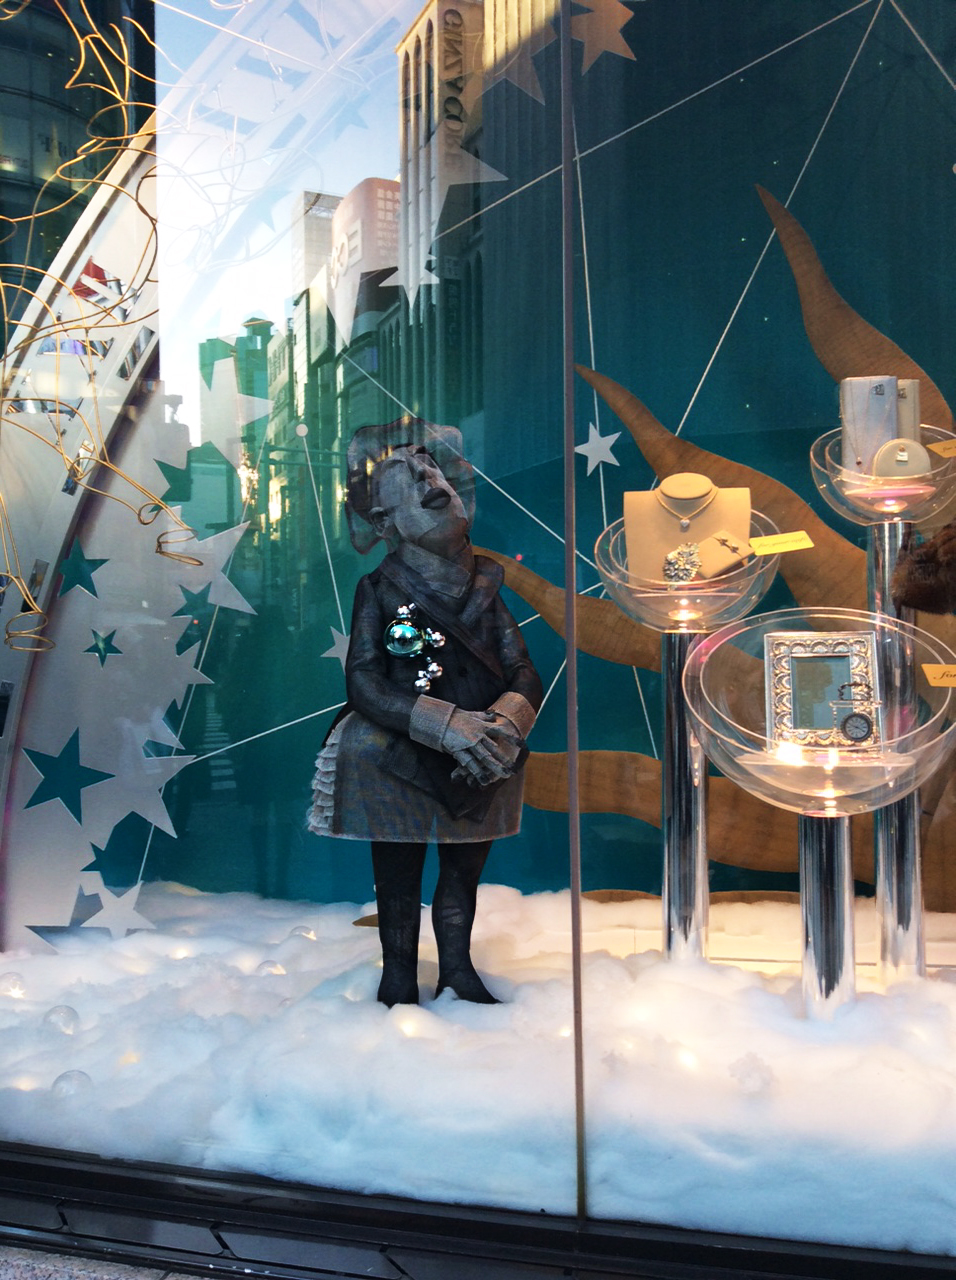 The Wako department store window catches reflections of the buildings opposite, but it is still possible to make out the shape of a small female figure made of grey mesh. baubles decorate her coat lapels as she stands in cotton-wool snow by a selection of gifts displayed in perspex bowls